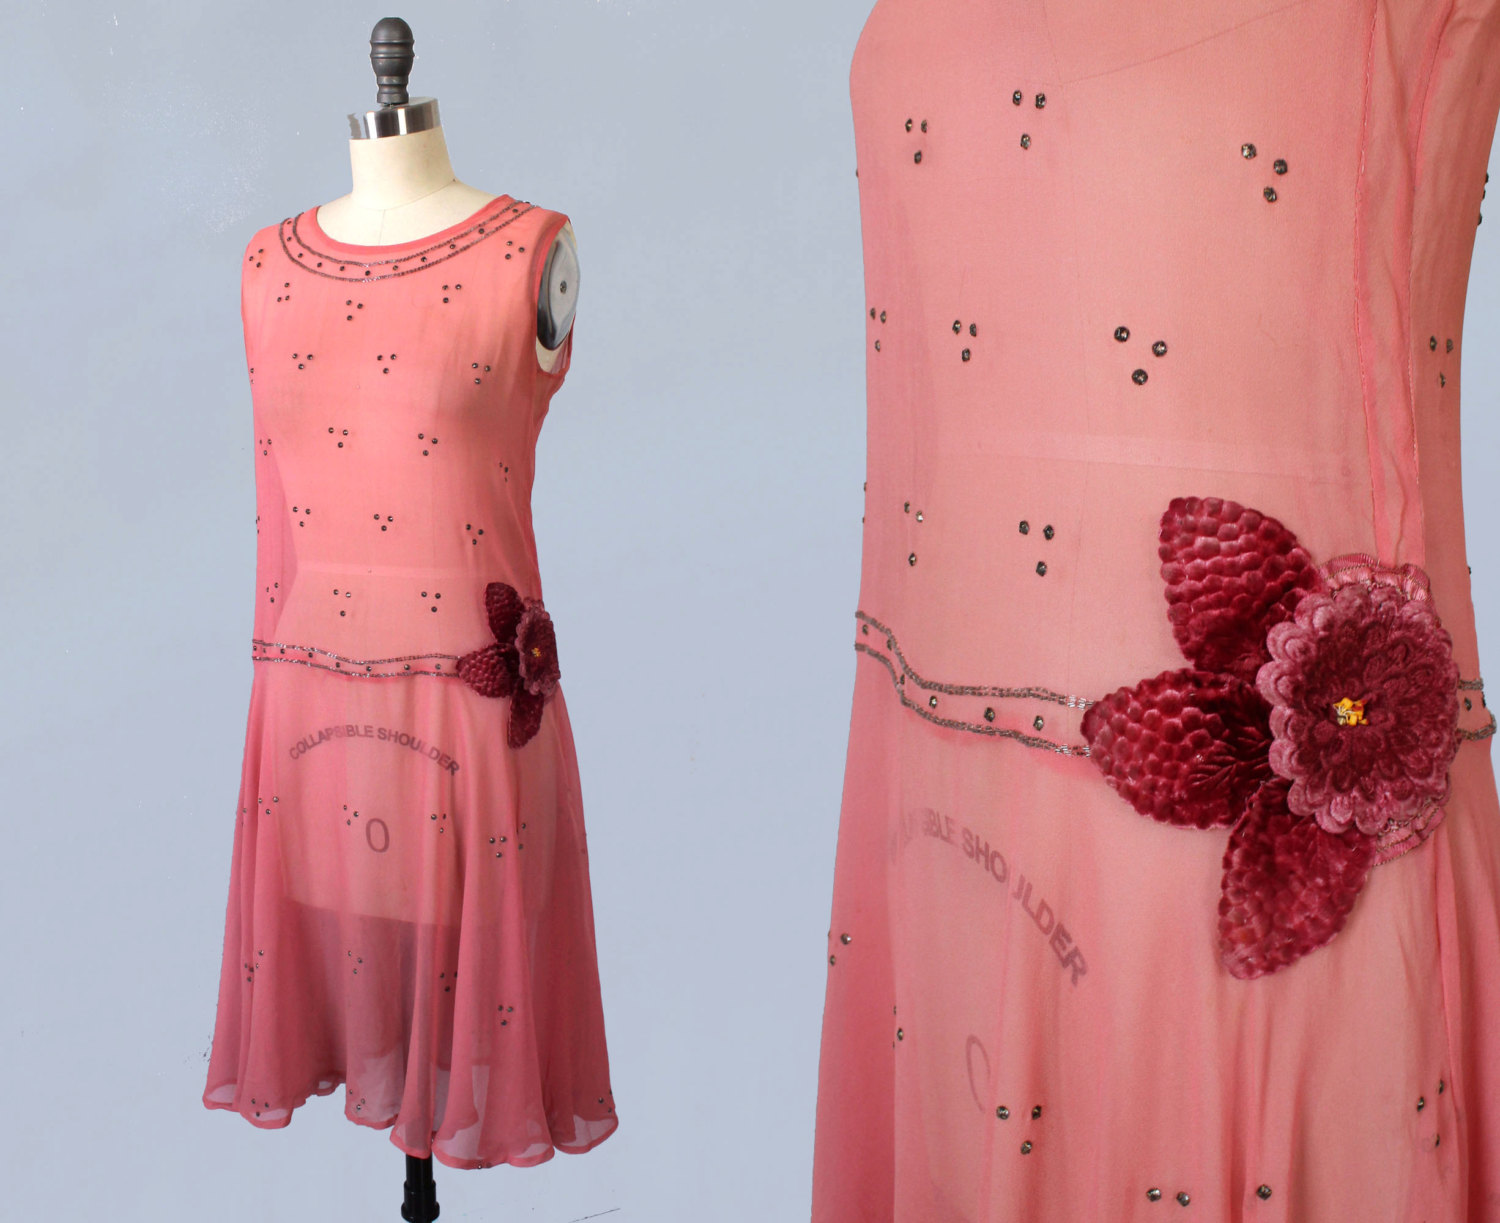 Pink silk chiffon dress with flower embellishment and rhinestones. 1920s.